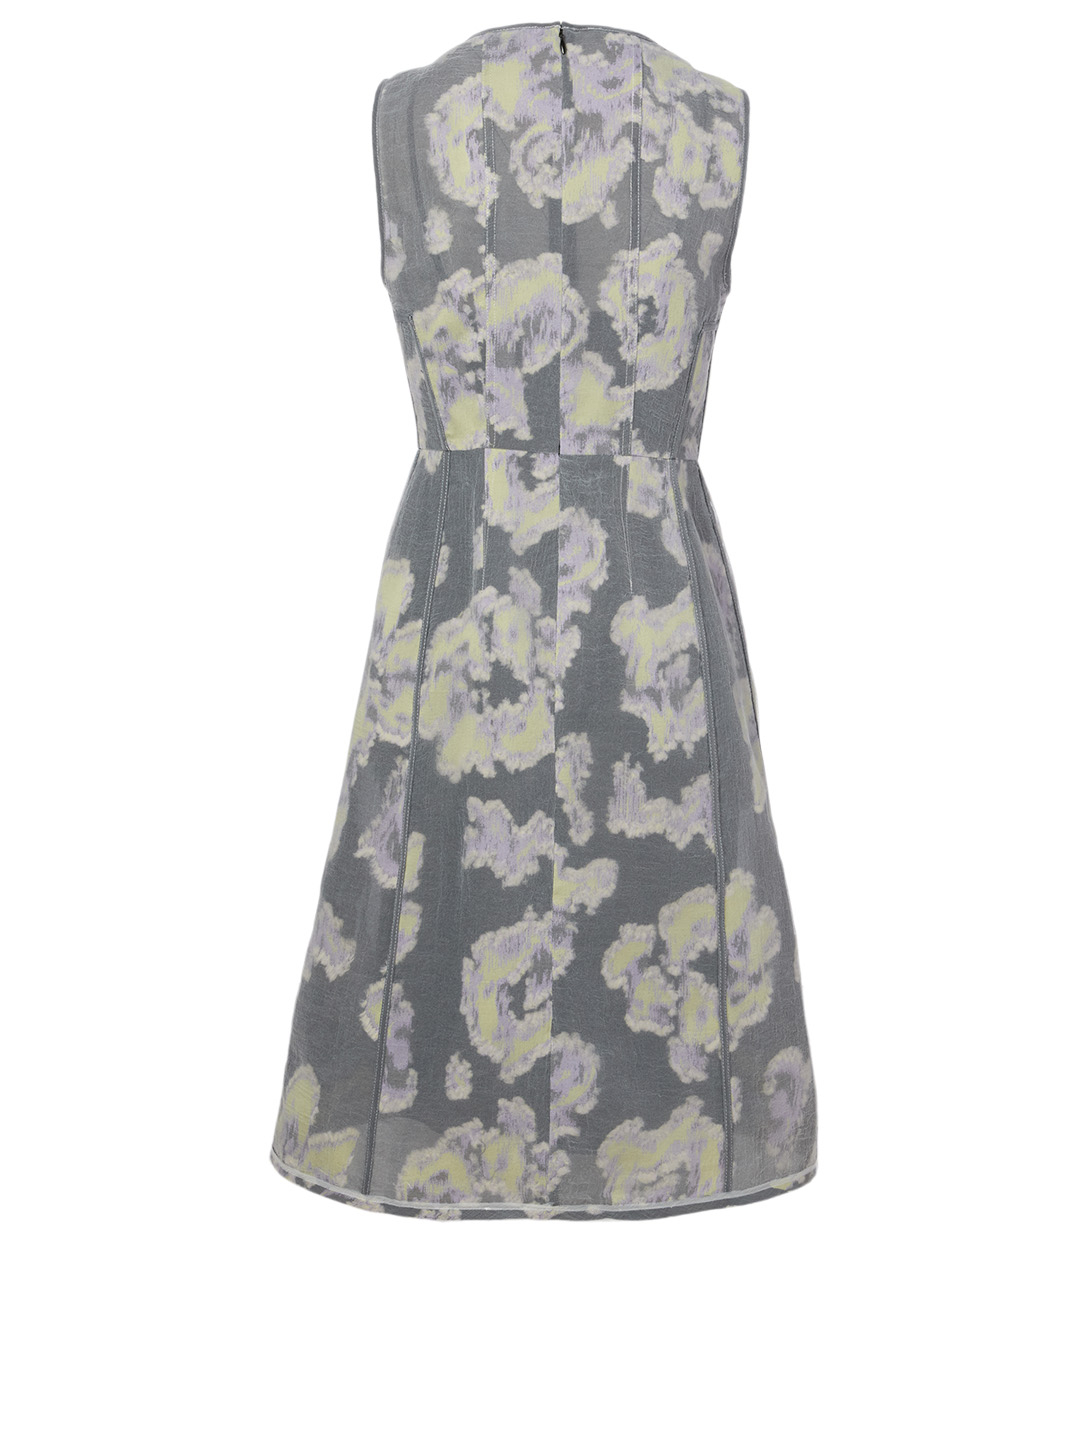 3.1 PHILLIP LIM Silk-Blend Dress In Daisy Print Women's Purple